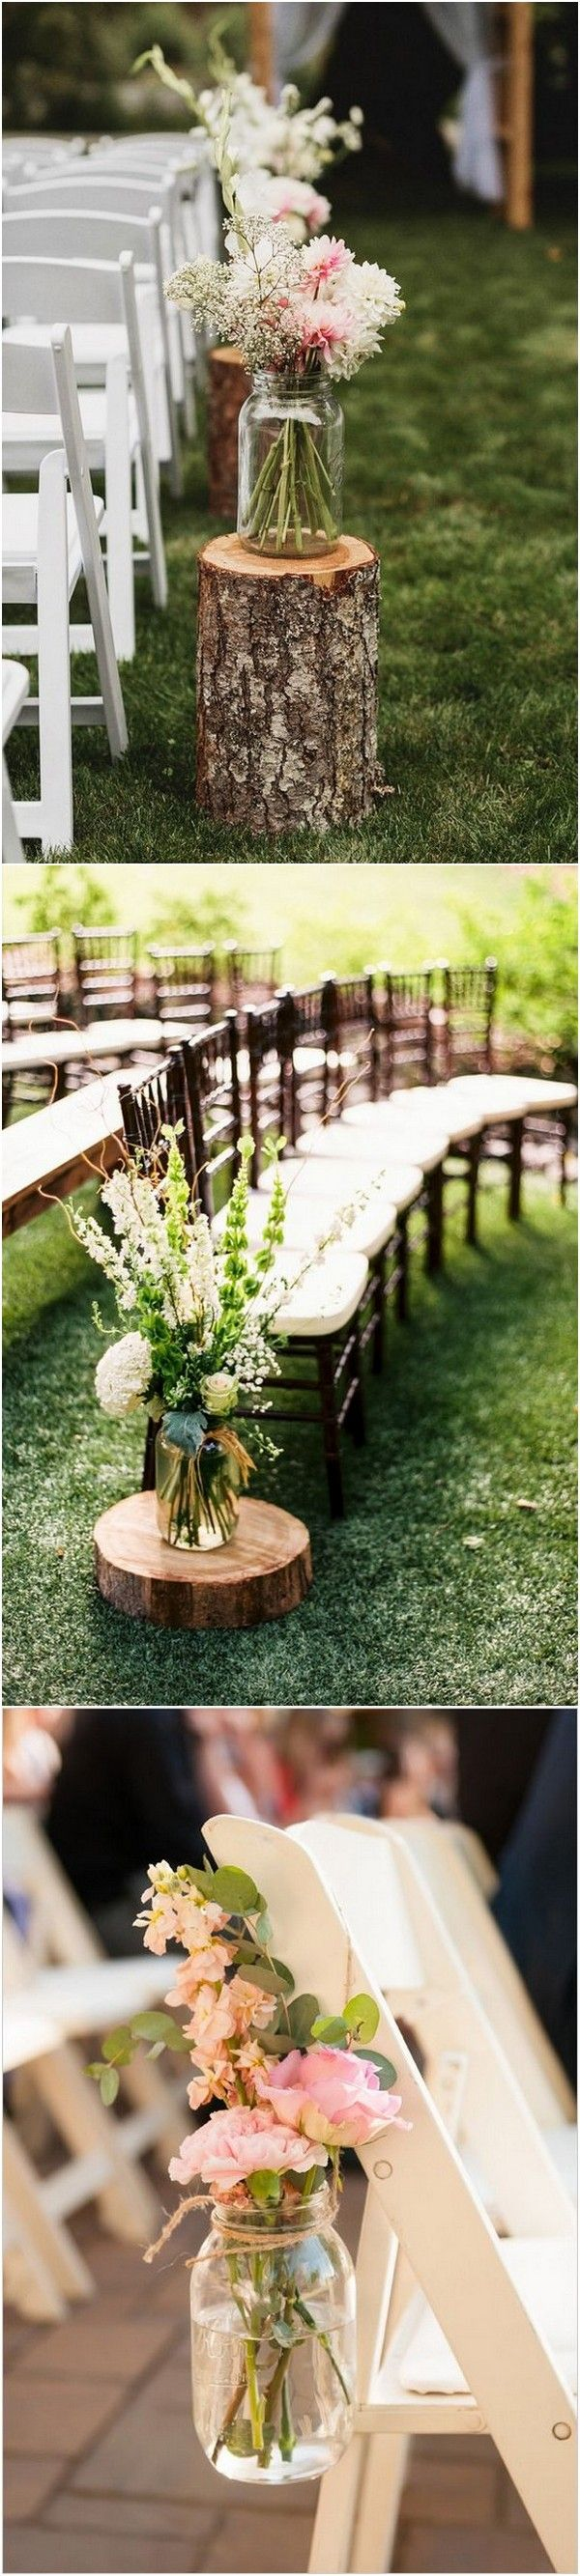 Garden wedding aisle decor   Trending Wedding Aisle Decoration Ideas Youull Love  Page  of